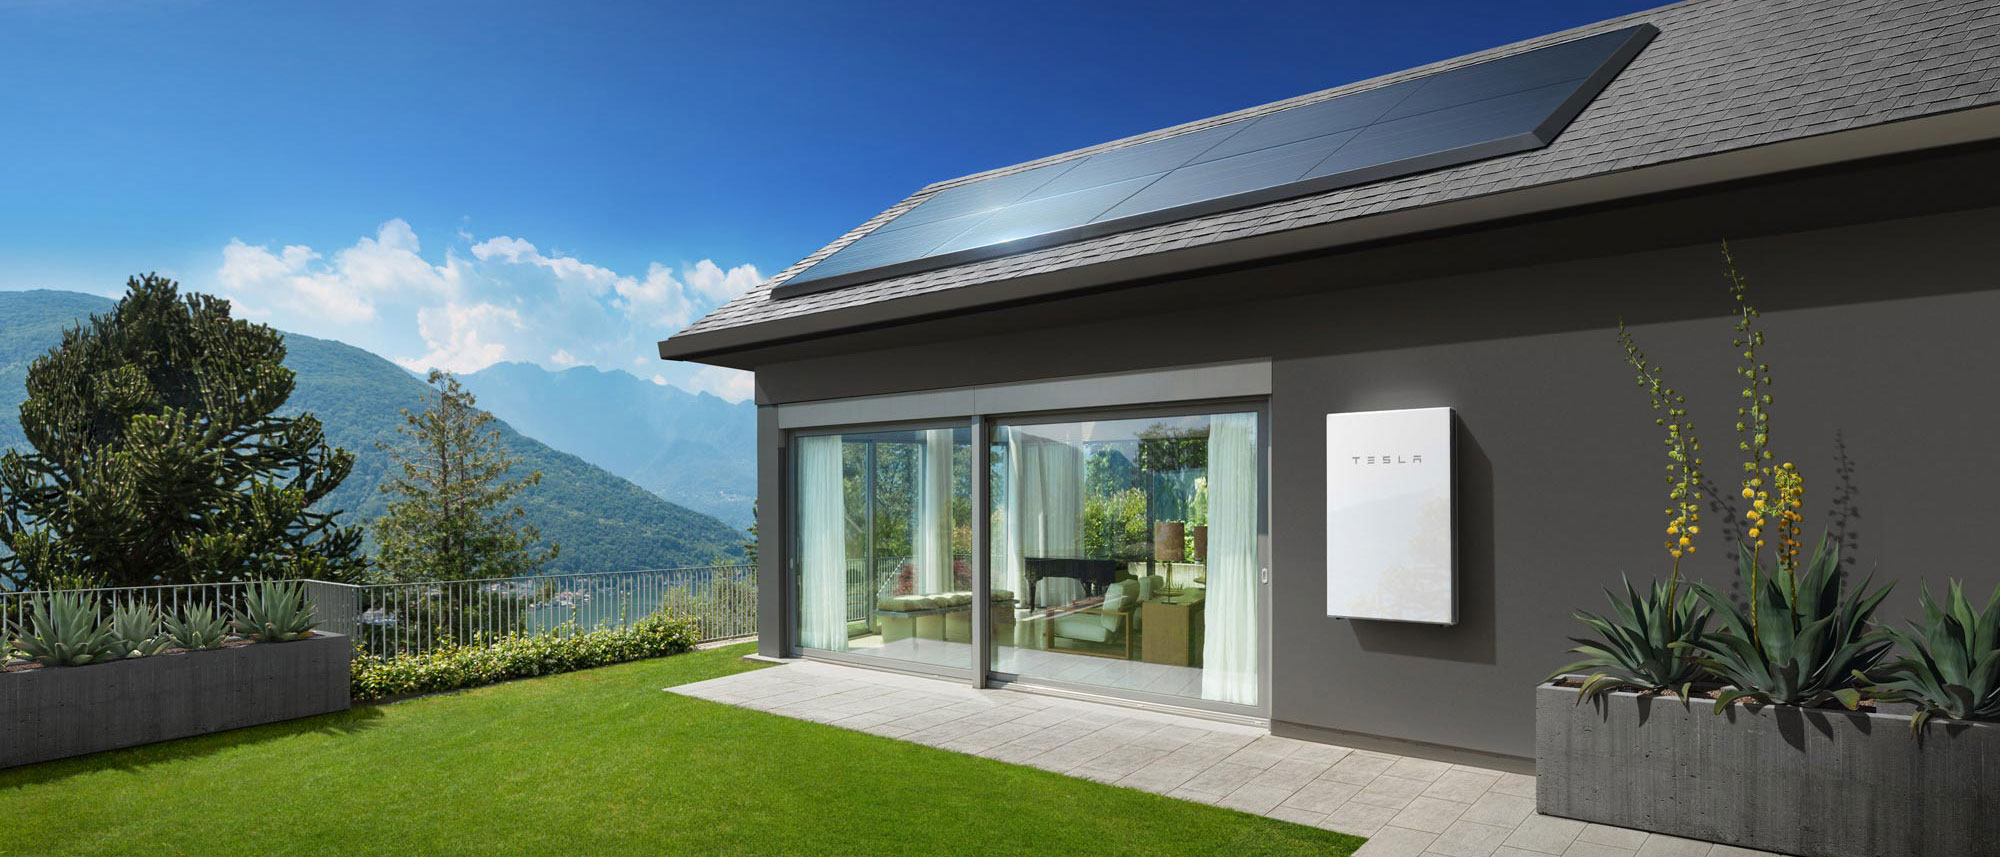 powerwall-house-with-battery-and-panels_new.jpg